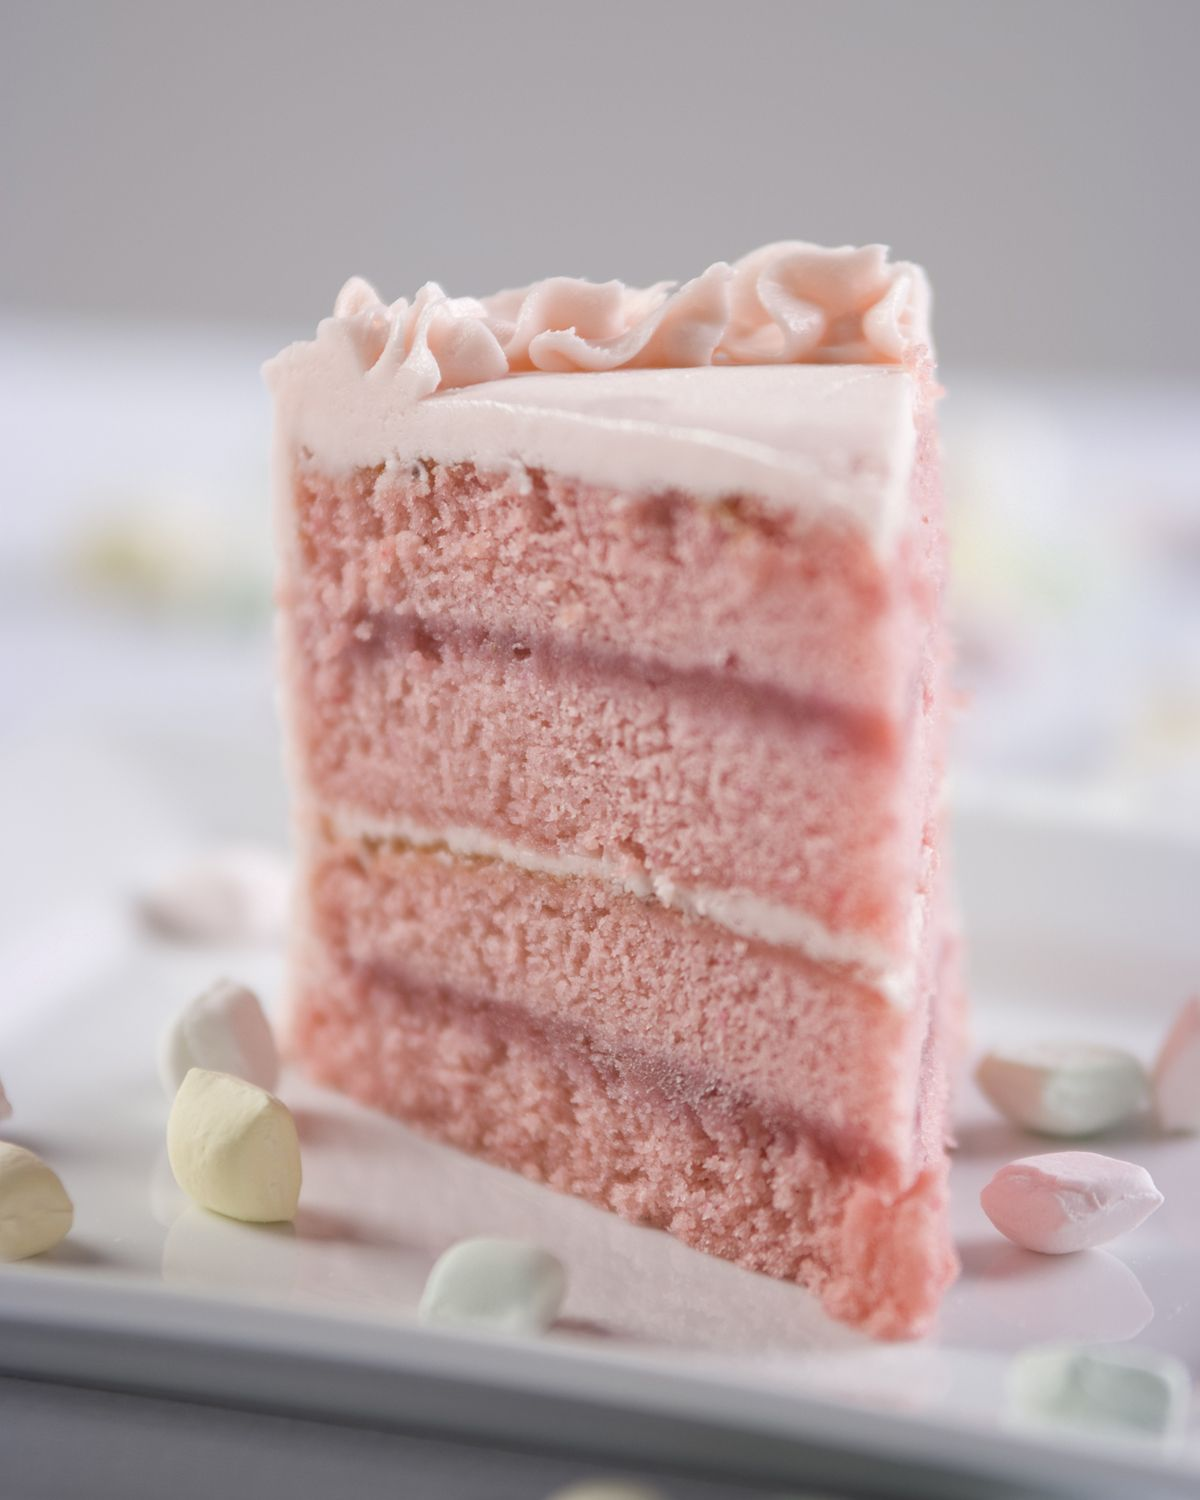 Strawberry Cake The Secret To This Is Strawberries A Pound Of